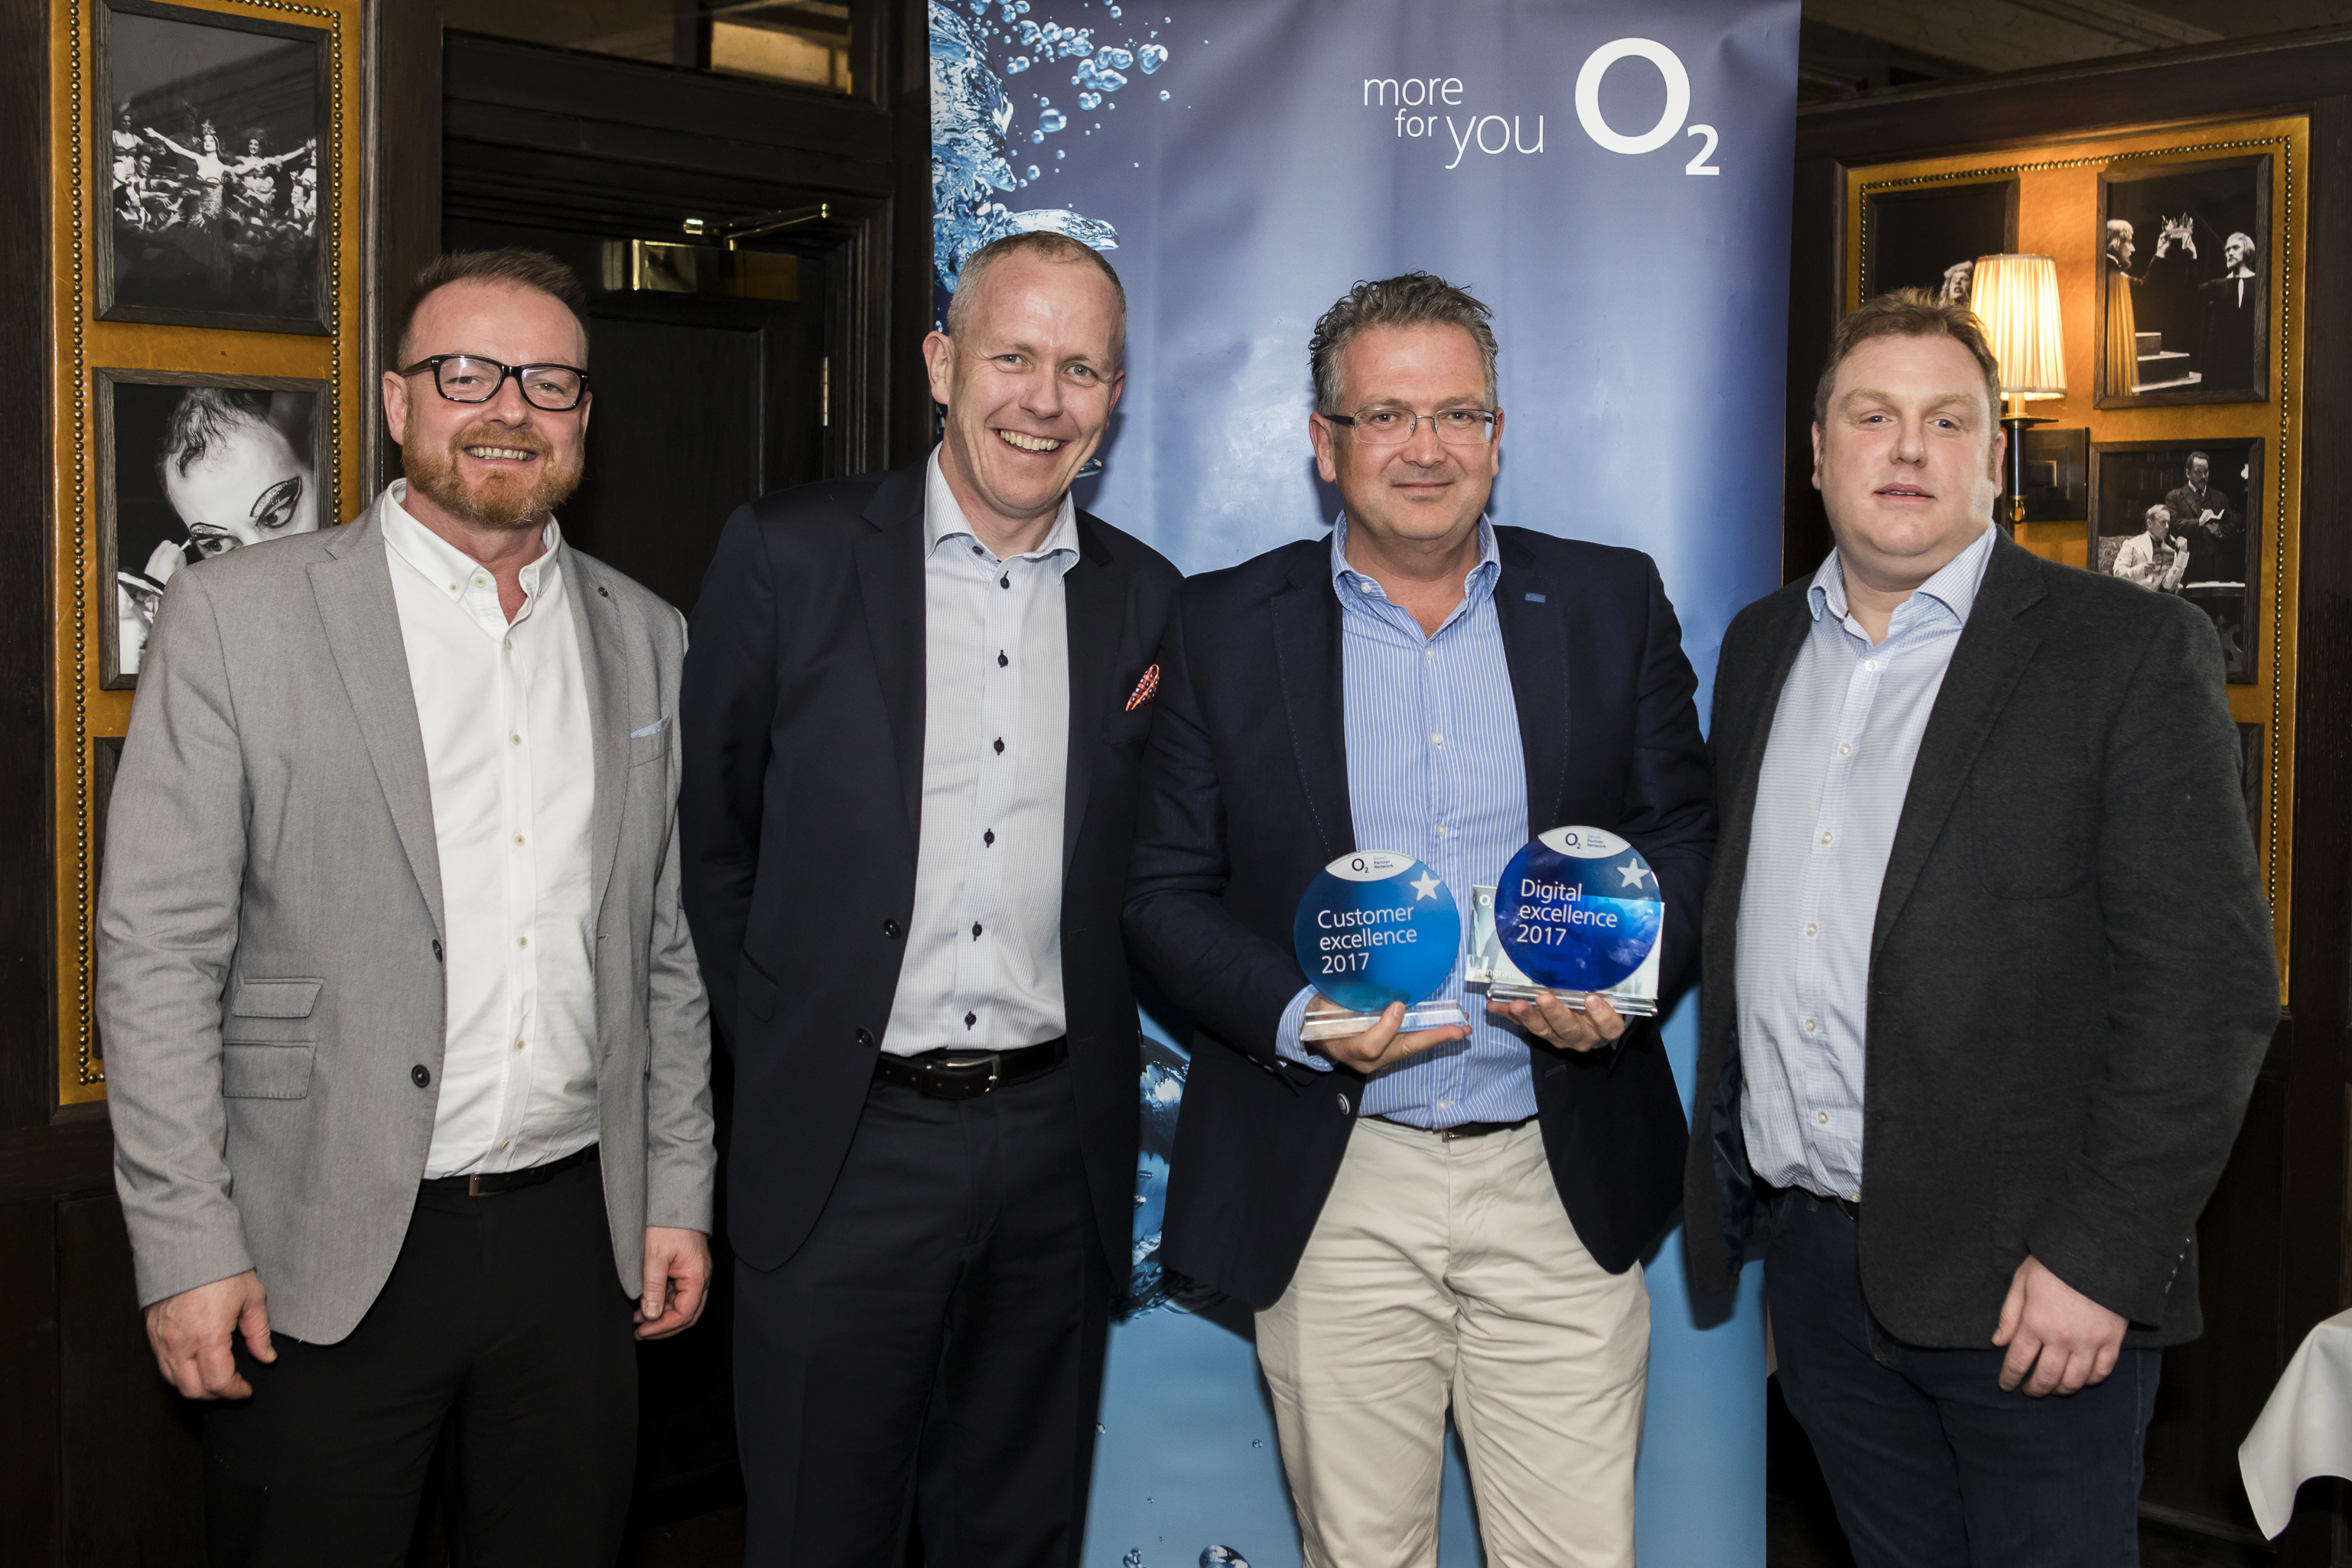 O2 Digital and Customer Excellence Award 2017